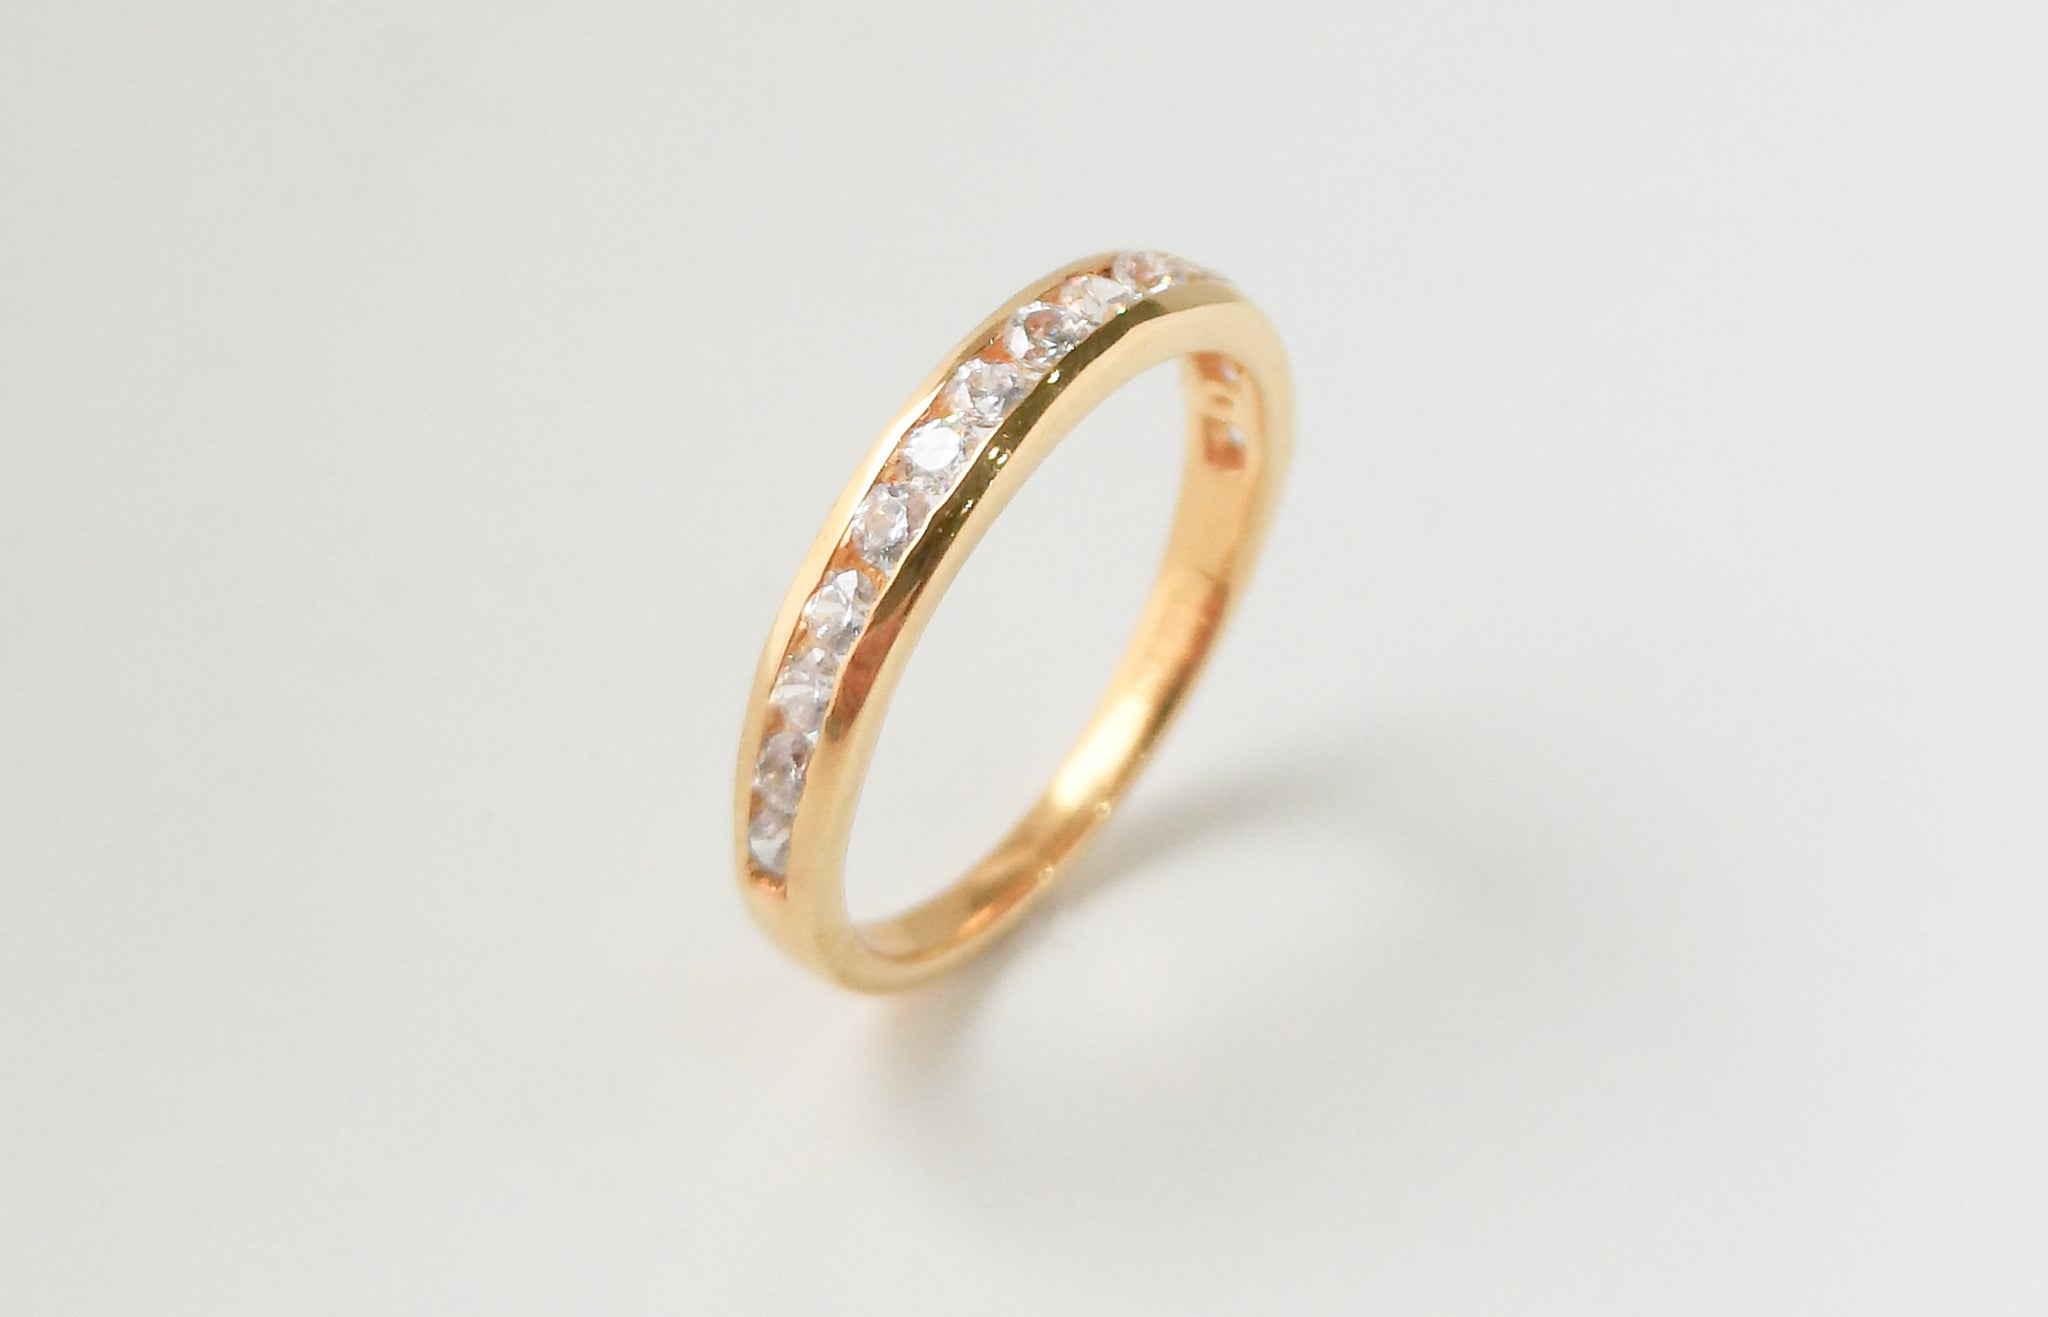 Eternity Ring 22ct Gold with Swarovski Zirconias LR13065